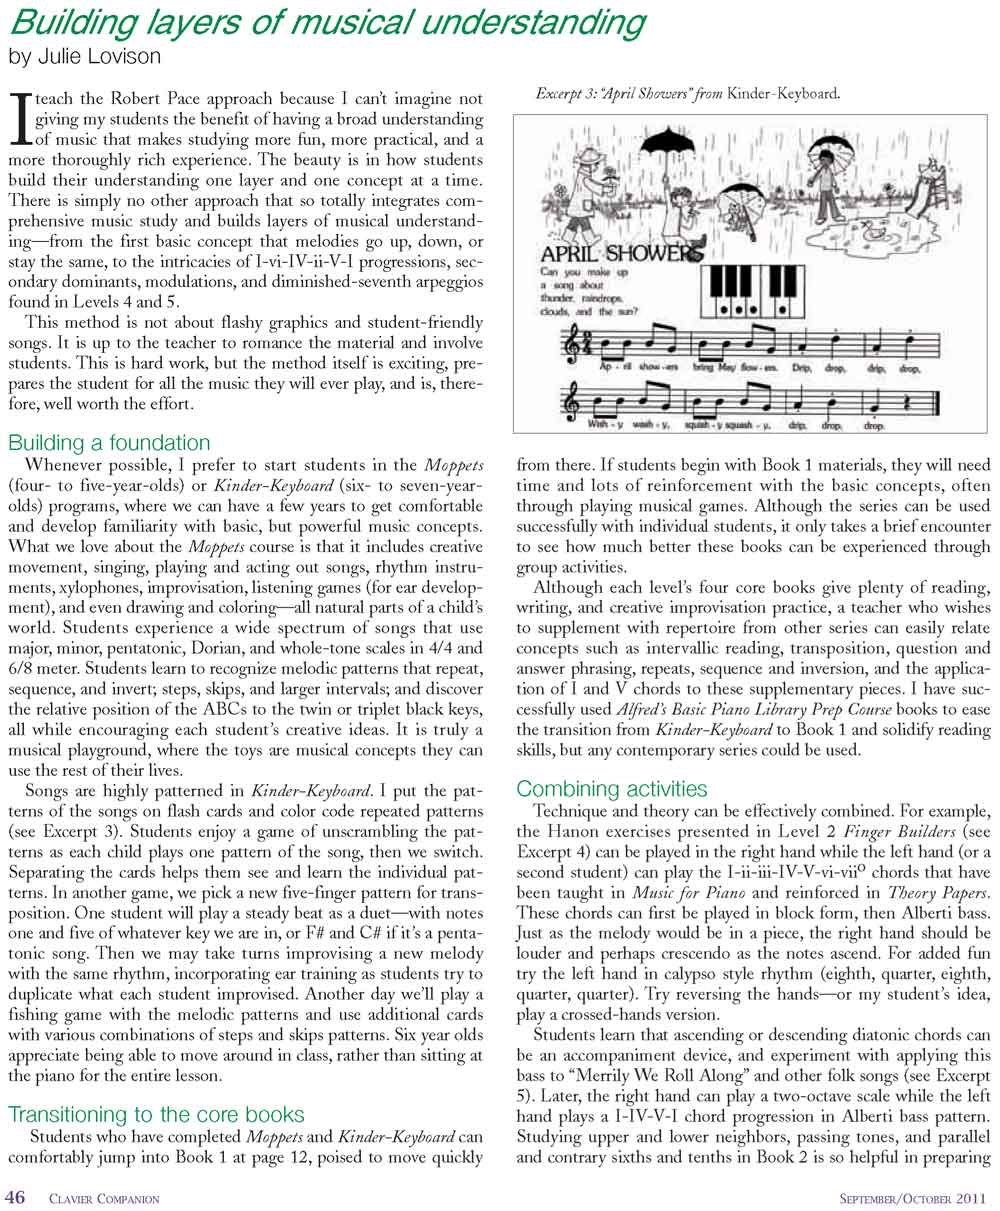 Building Layers of Musical Understanding, By Julie Lovison, In Clavier Companion Magazine: September/October.